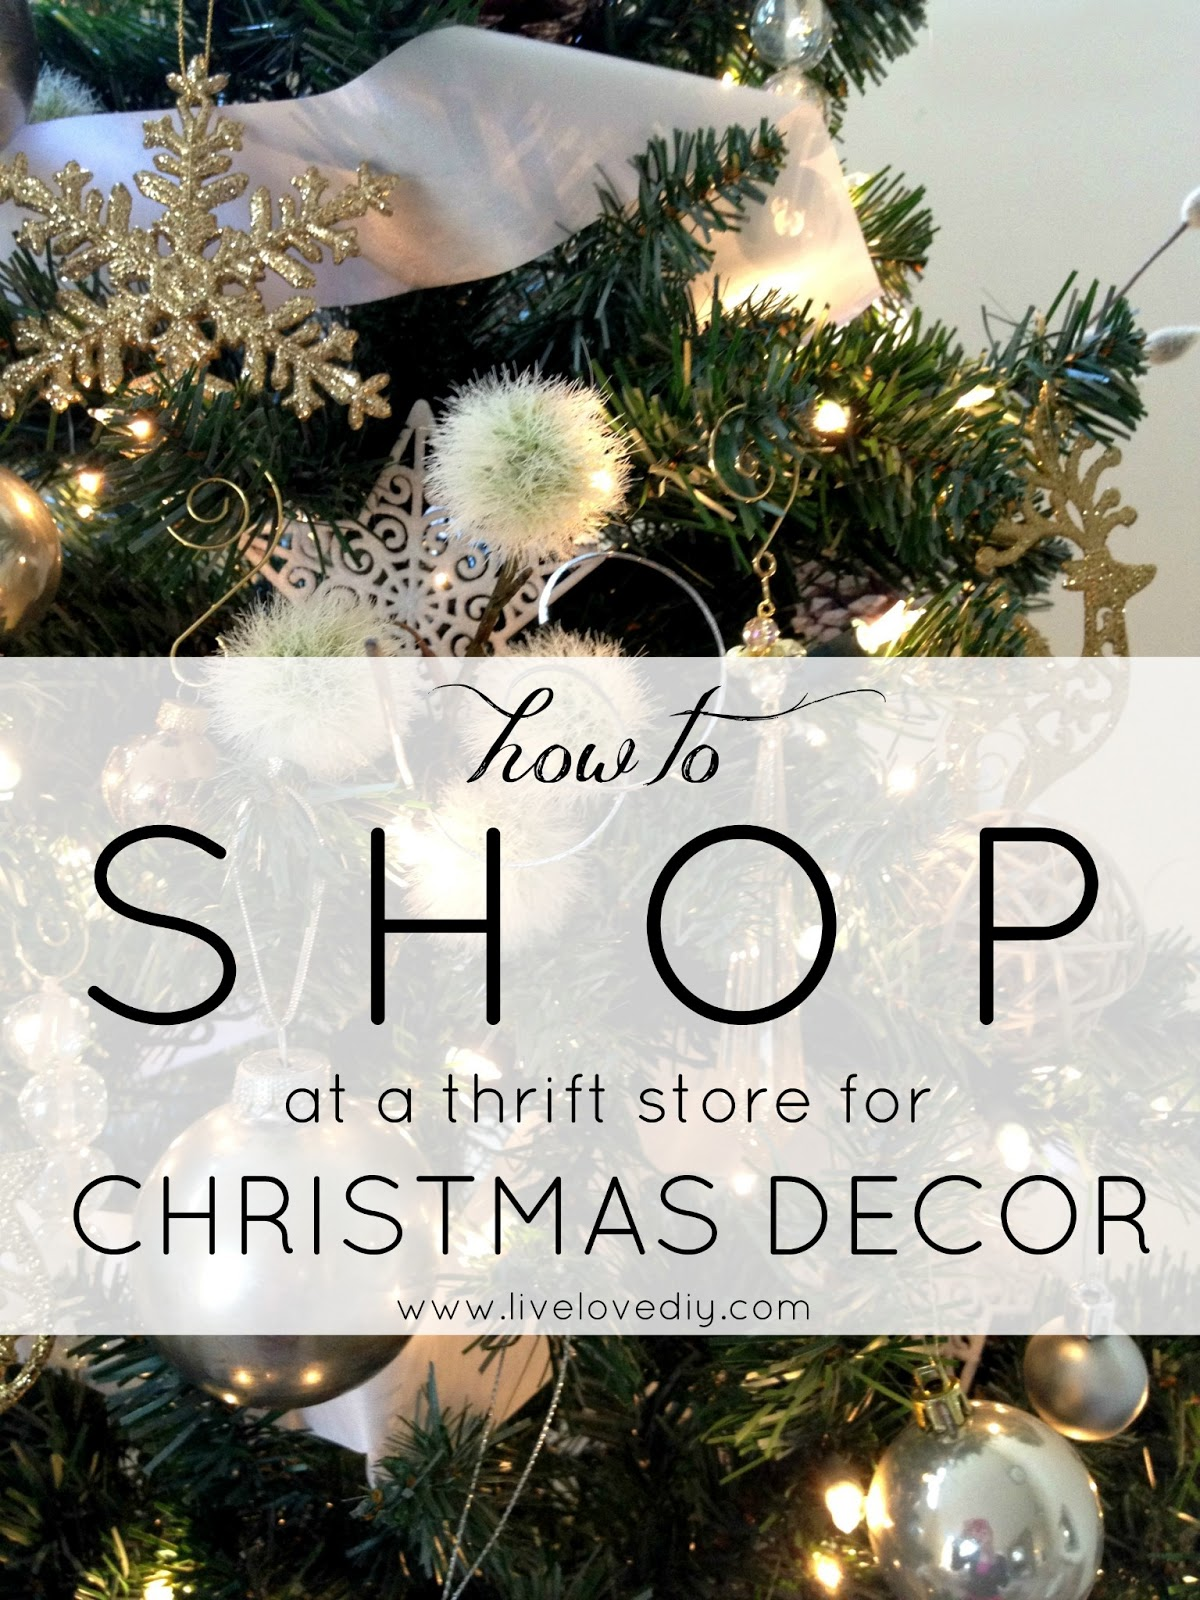 LiveLoveDIY: How To Shop at a Thrift Store for Christmas Decor